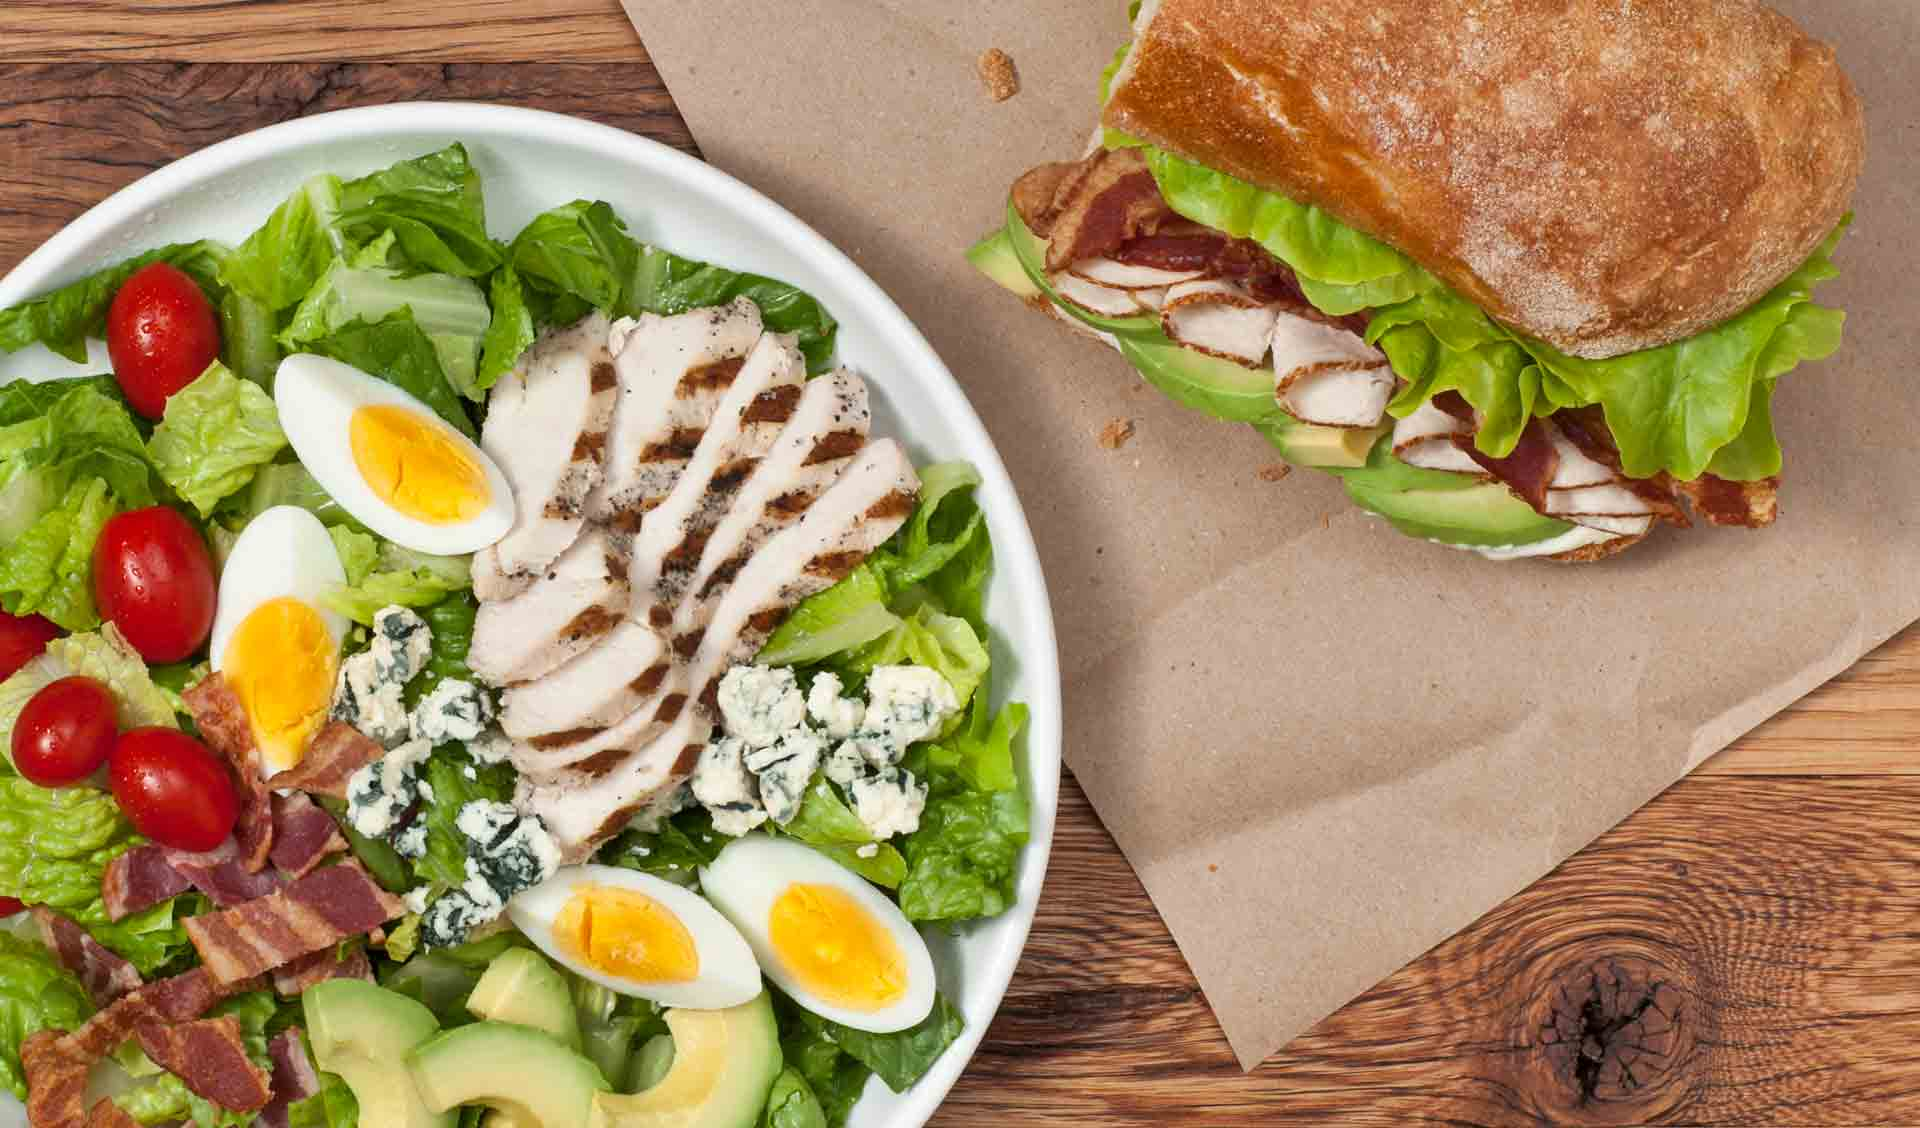 Perfect Pairings - Salads, Soups and Sandwiches at Ladle and Leaf